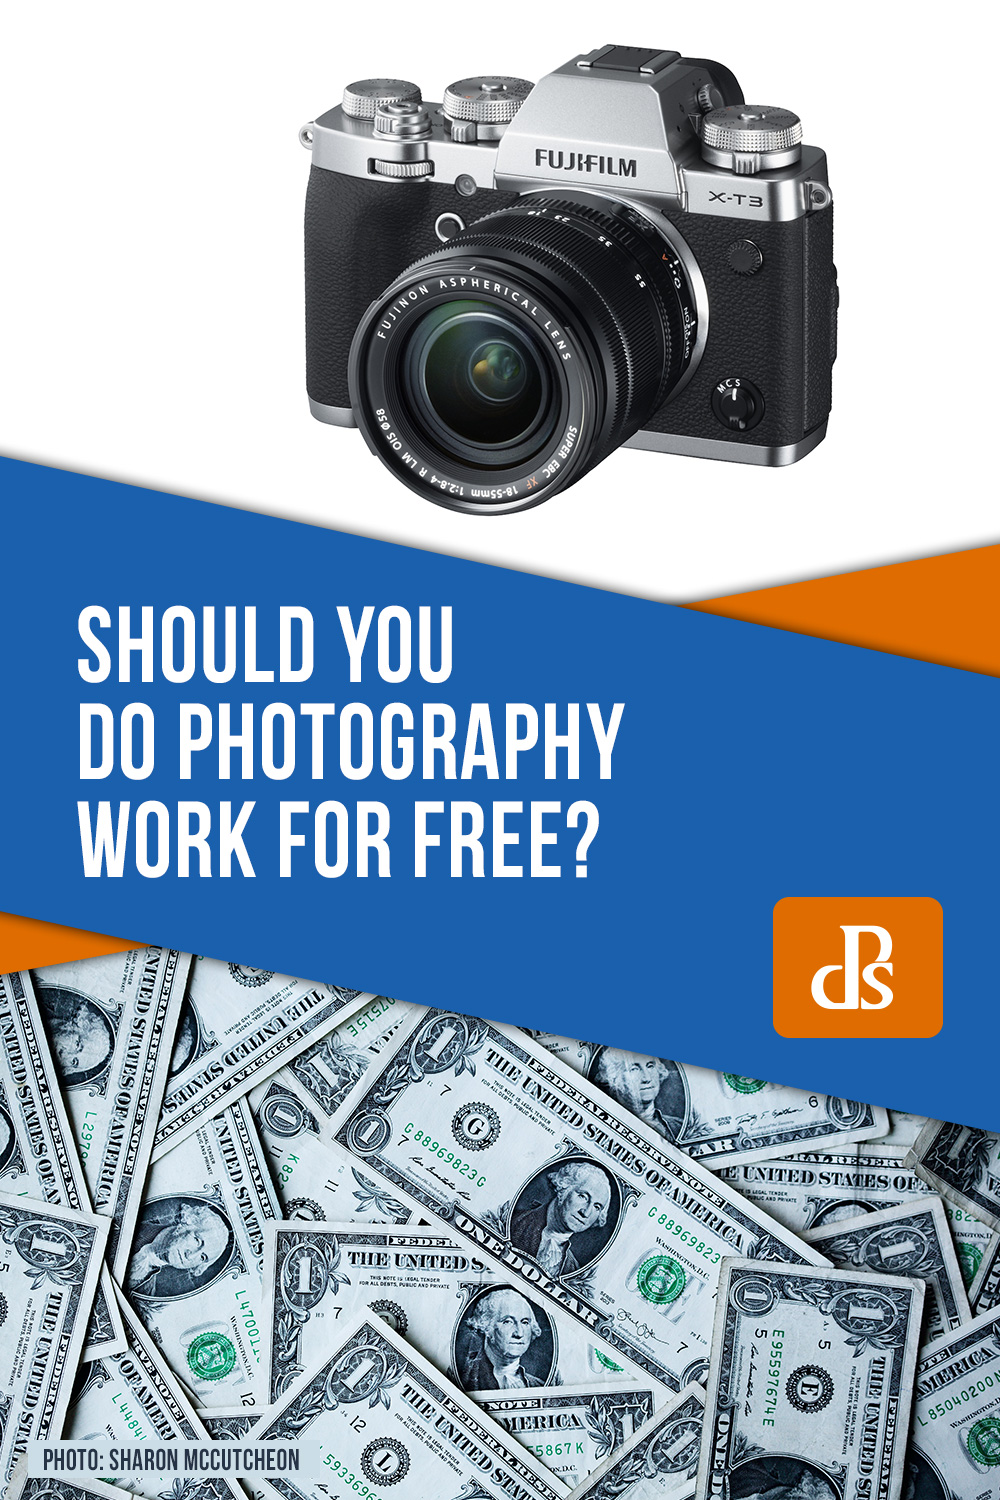 Should You Do Photography Work For Free?